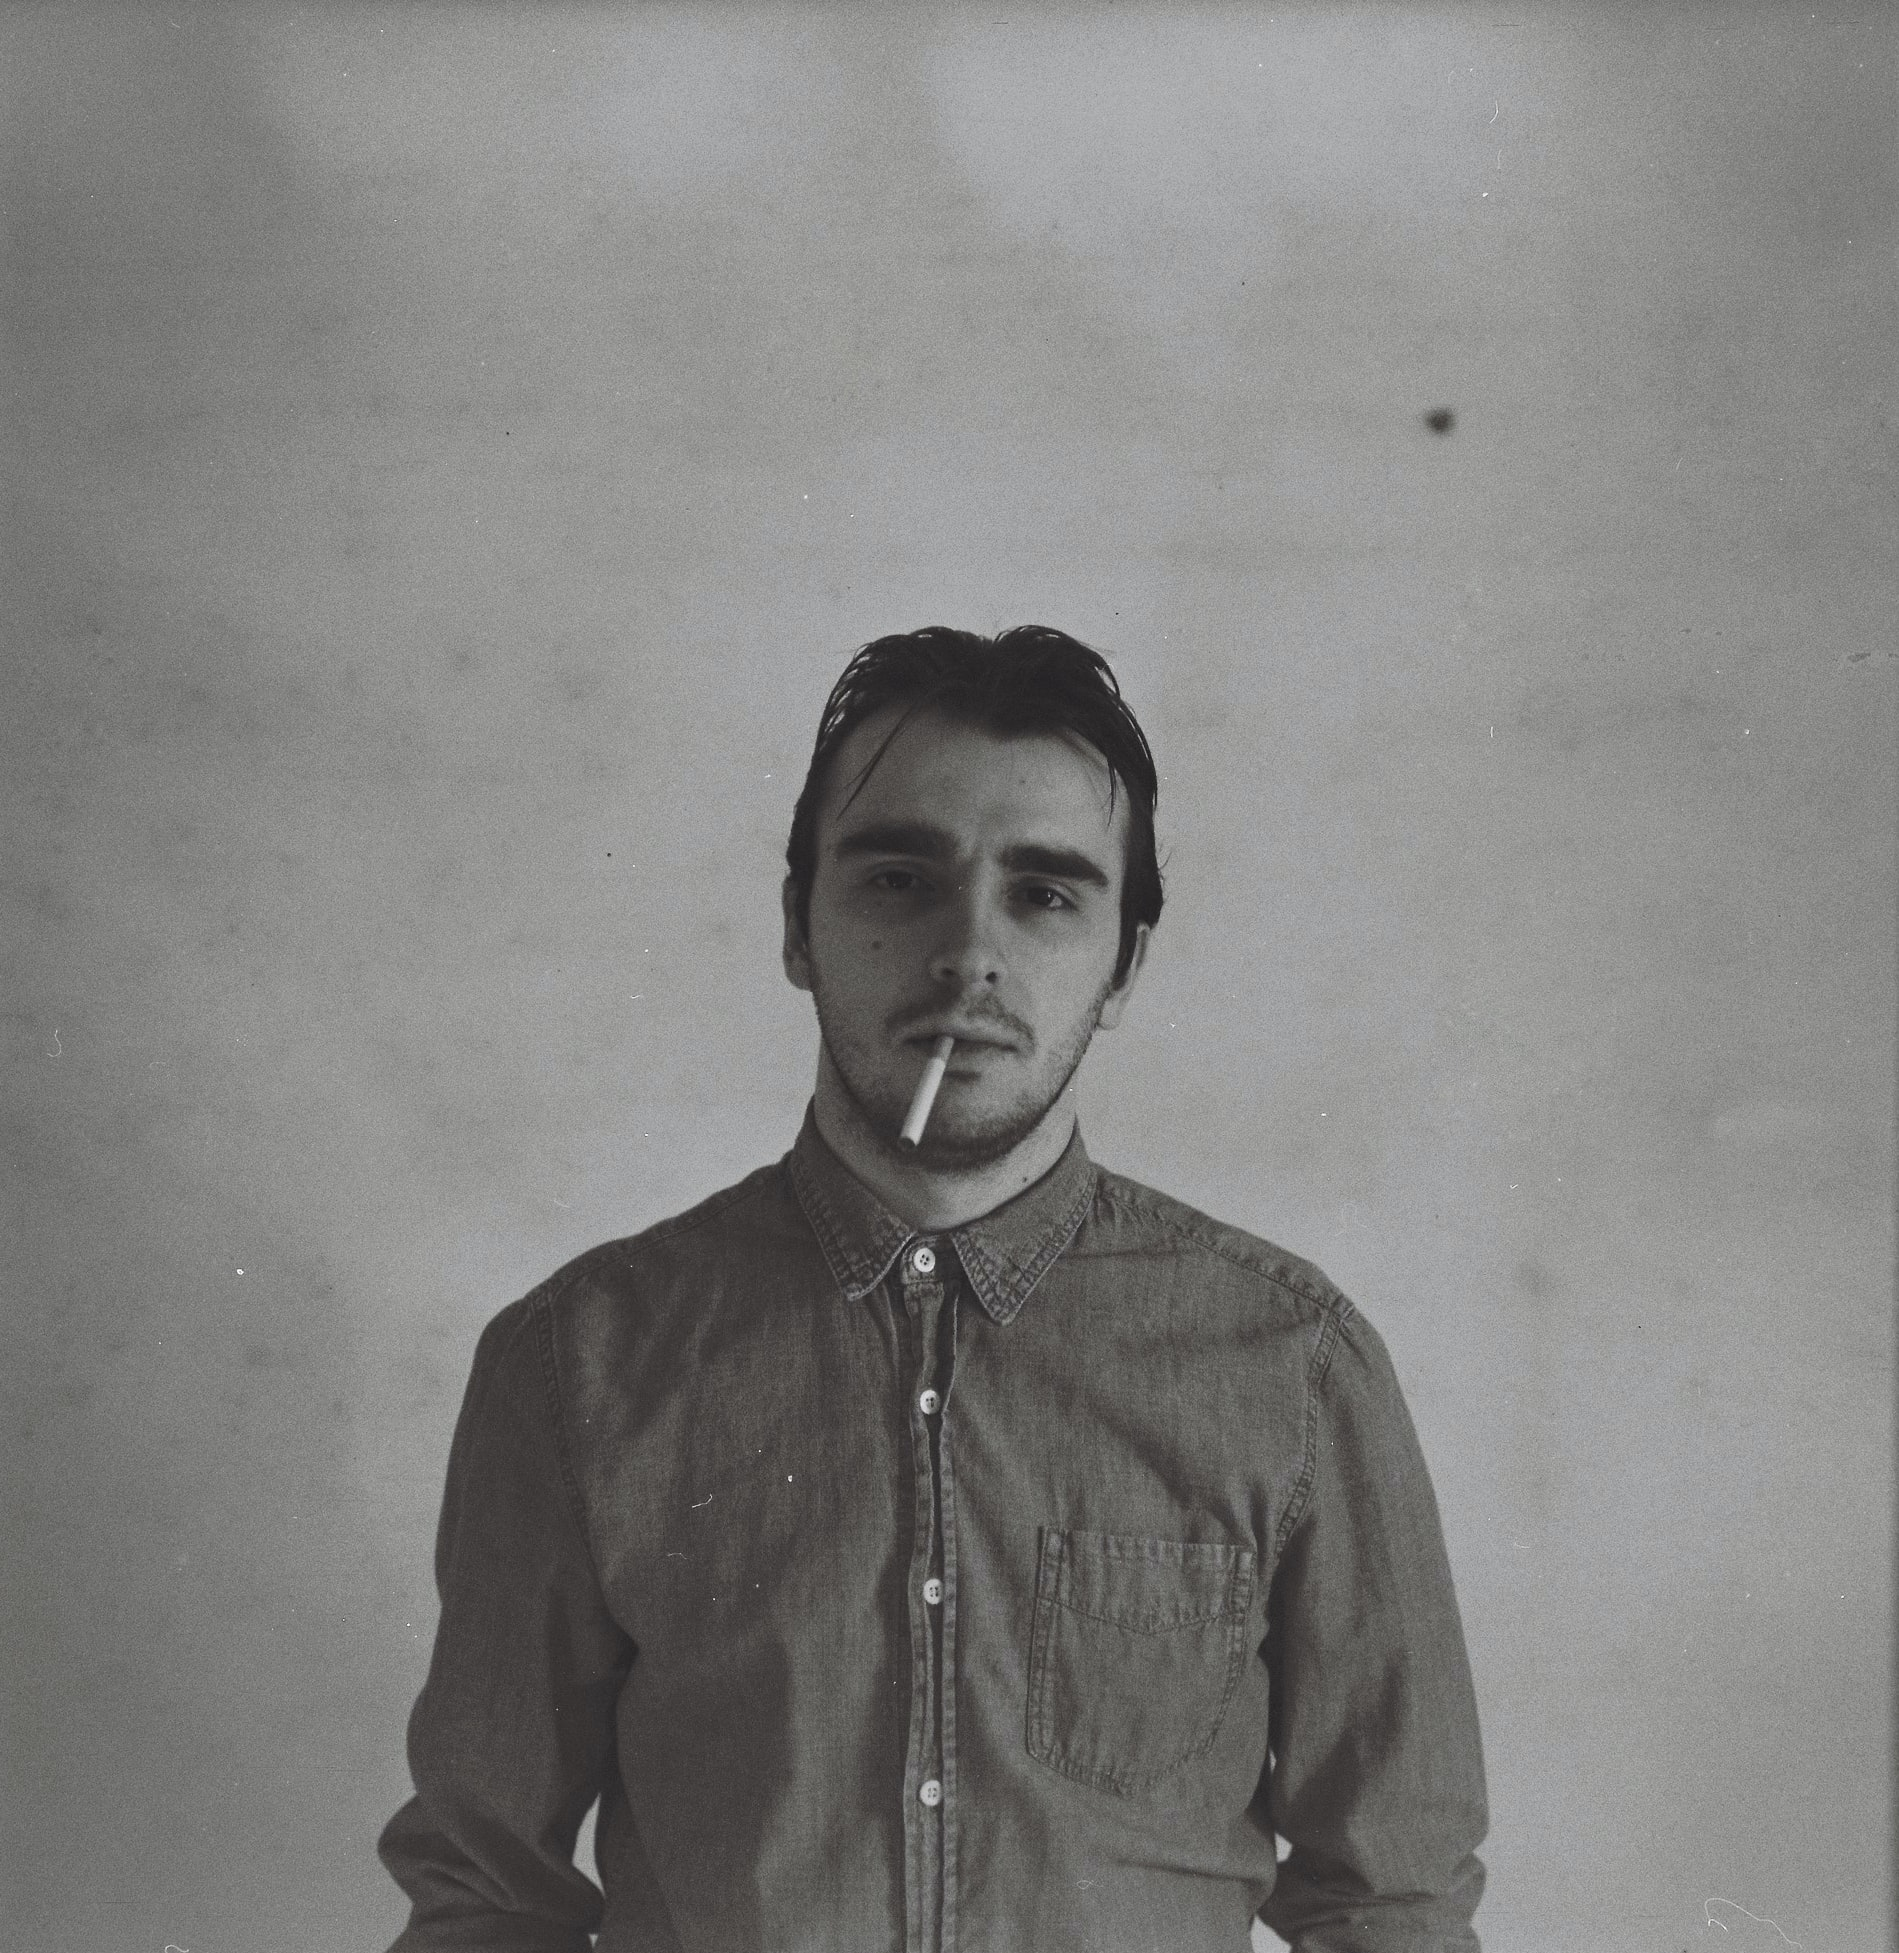 Retro portrait of a man smoking an unlit cigarette